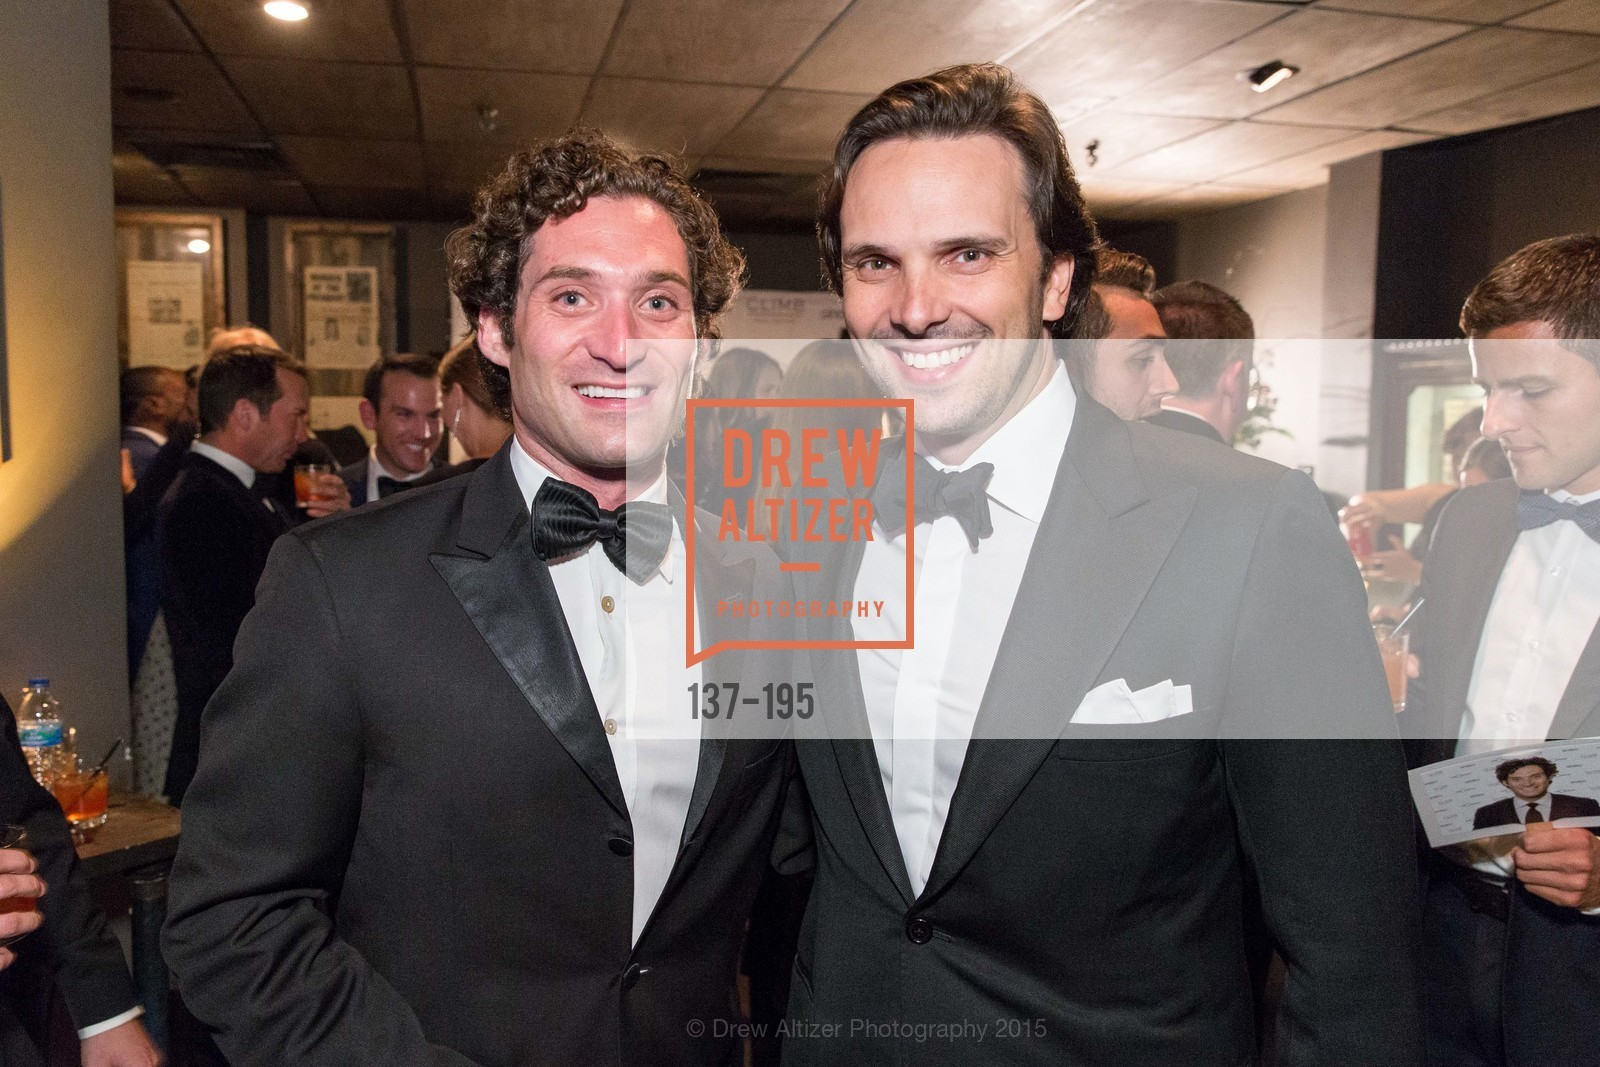 Justin Fichelson, Will Harbin, Climb Real Estate and Sindeo Celebrate the Launch of Million Dollar Listing San Francisco, Local Edition San Francisco. 691 Market St, July 8th, 2015,Drew Altizer, Drew Altizer Photography, full-service agency, private events, San Francisco photographer, photographer california